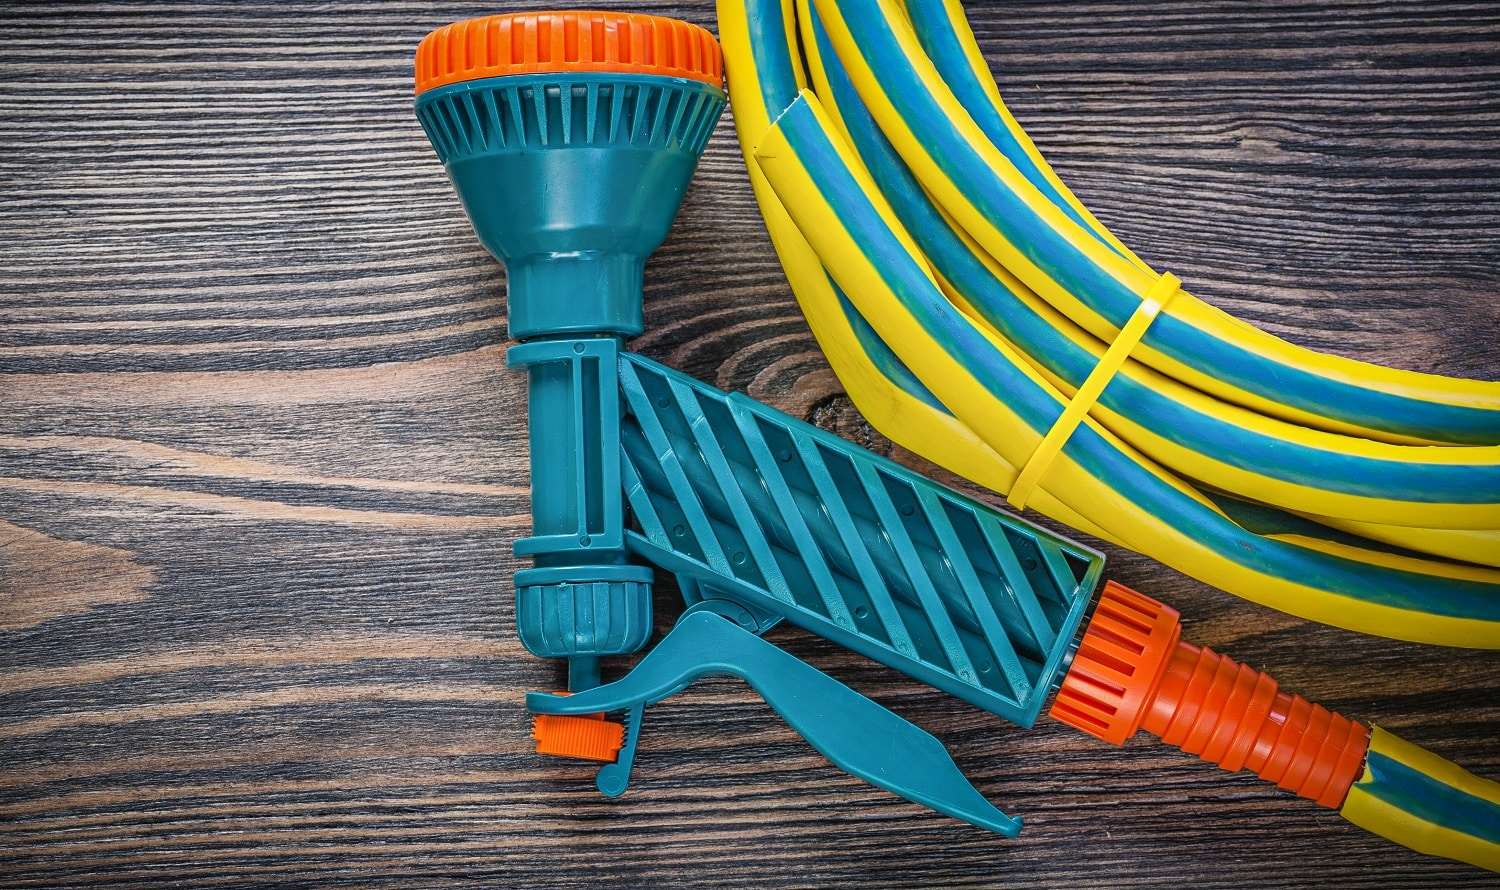 Coiled rubber hose water sprayer on wooden board gardening concept.